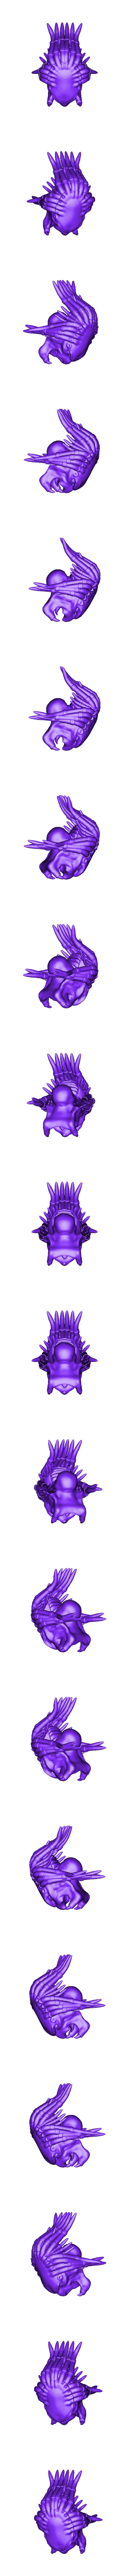 11-UMF-00010.stl Download free STL file Ugly Mother Flockers -or- Heads for Cannibal Chickens who joined a Cult and love 80's action movies. • 3D printing model, FelixTheCrazy